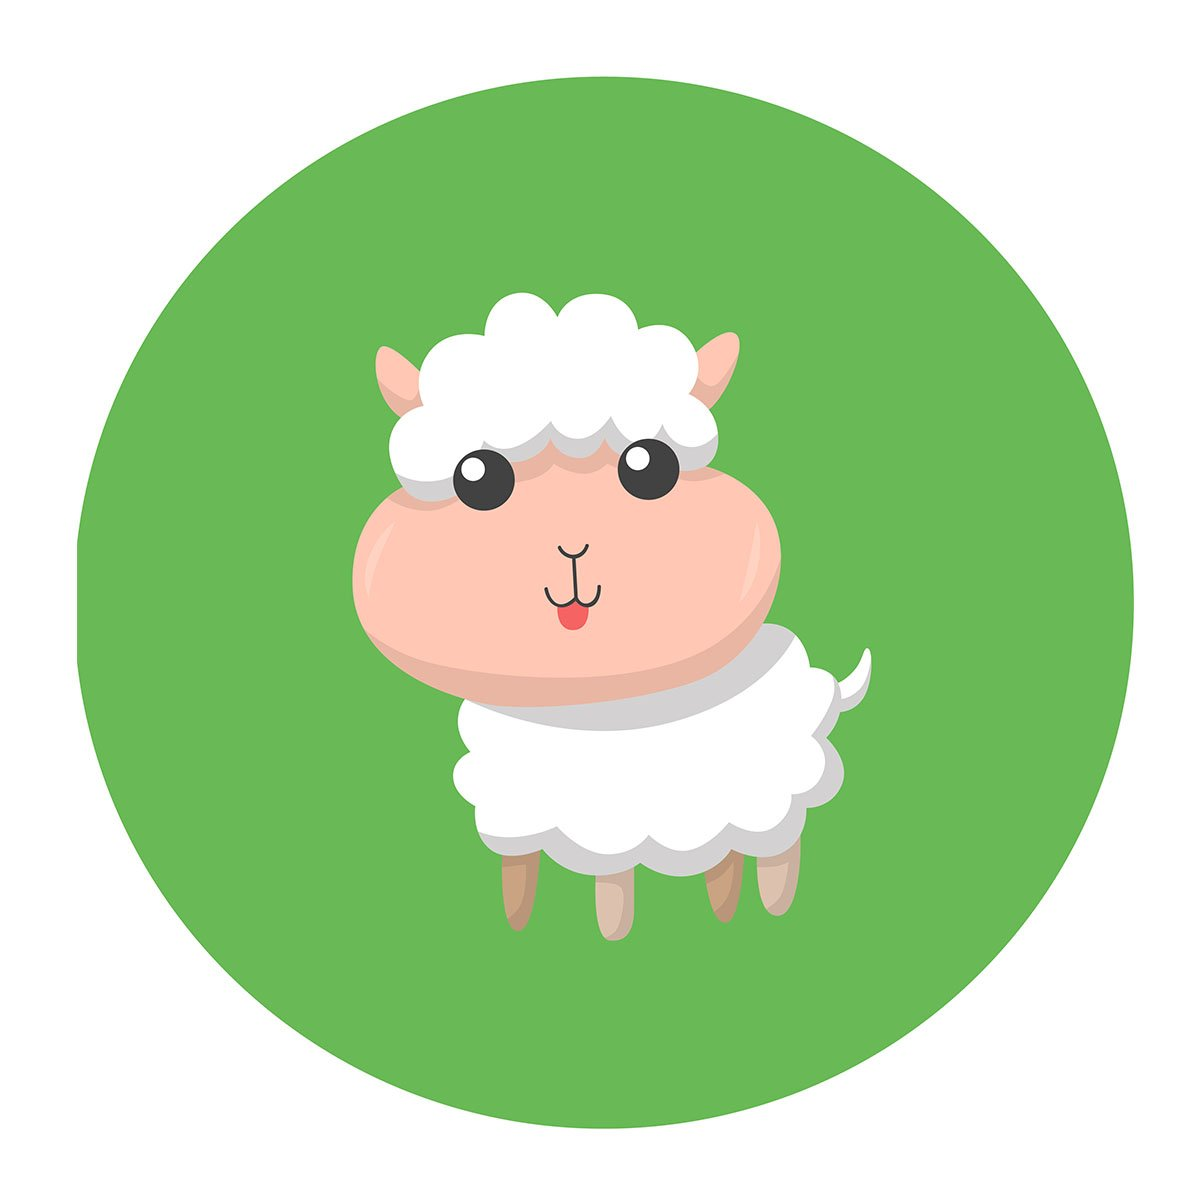 MAGJUCHE Green Little Sheep Stickers, Farm Animal Lamb Unisex Baby Shower or Birthday Sticker Labels, 2 Inch, 40-Pack